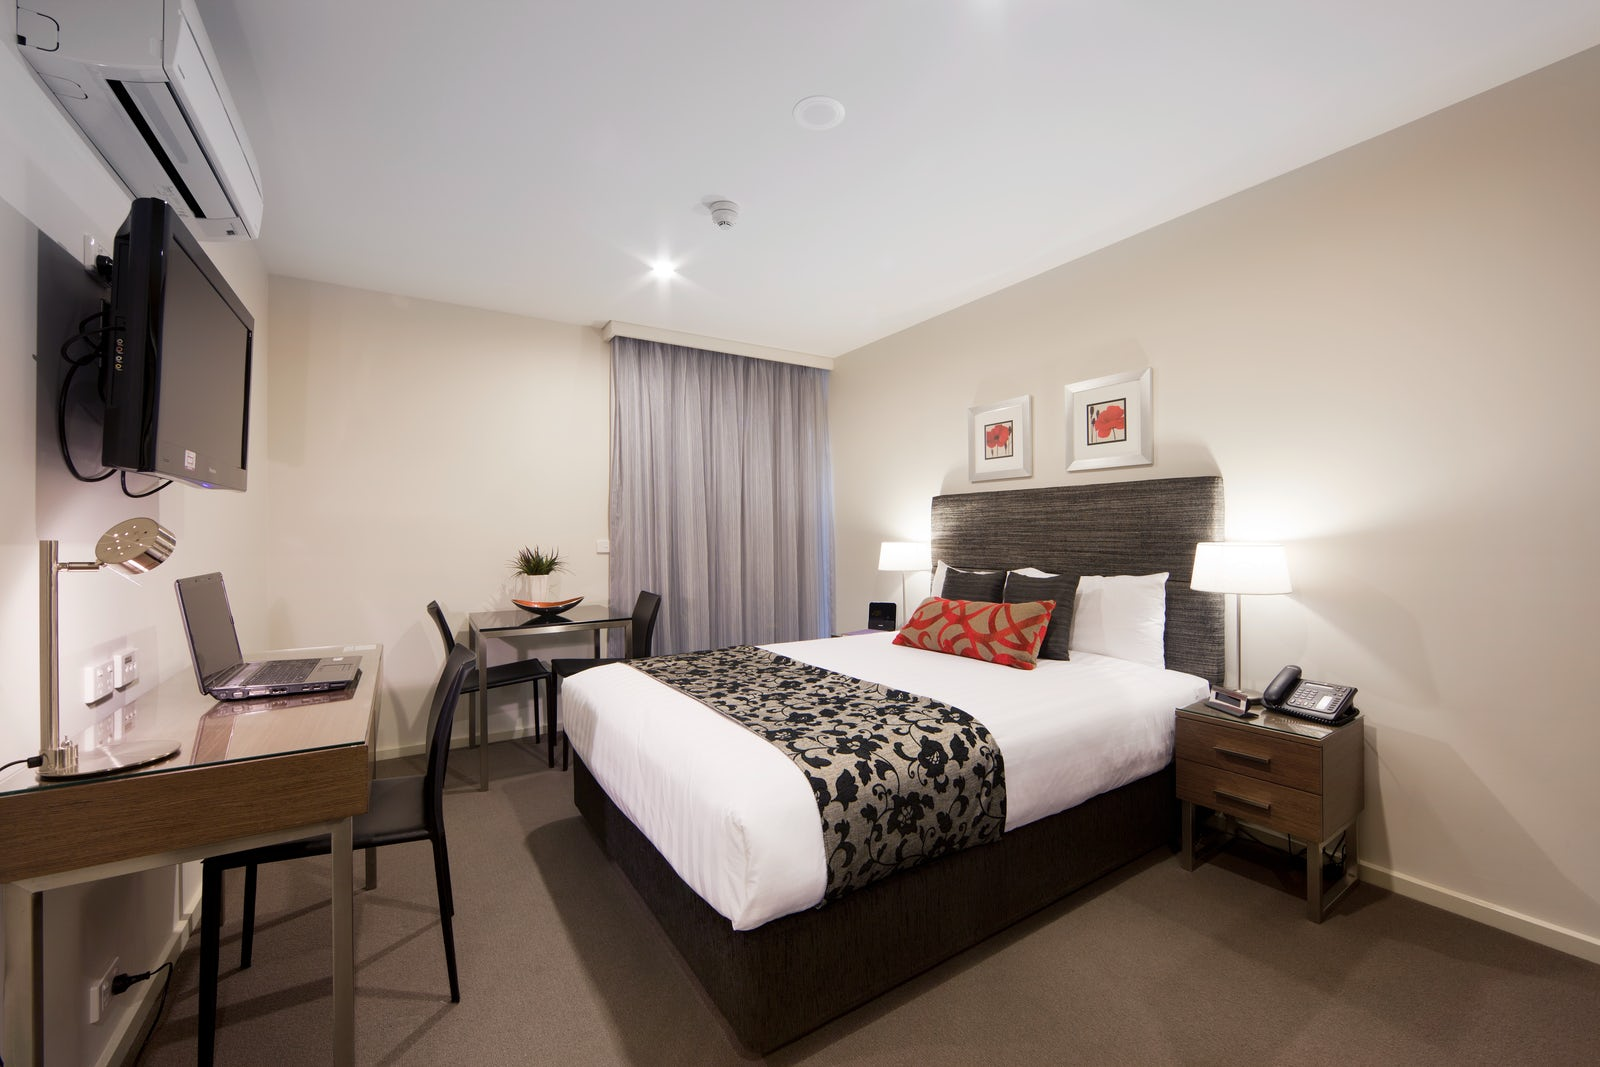 Image of a luxurious suite in the Aria Hotel located on Dooring Street